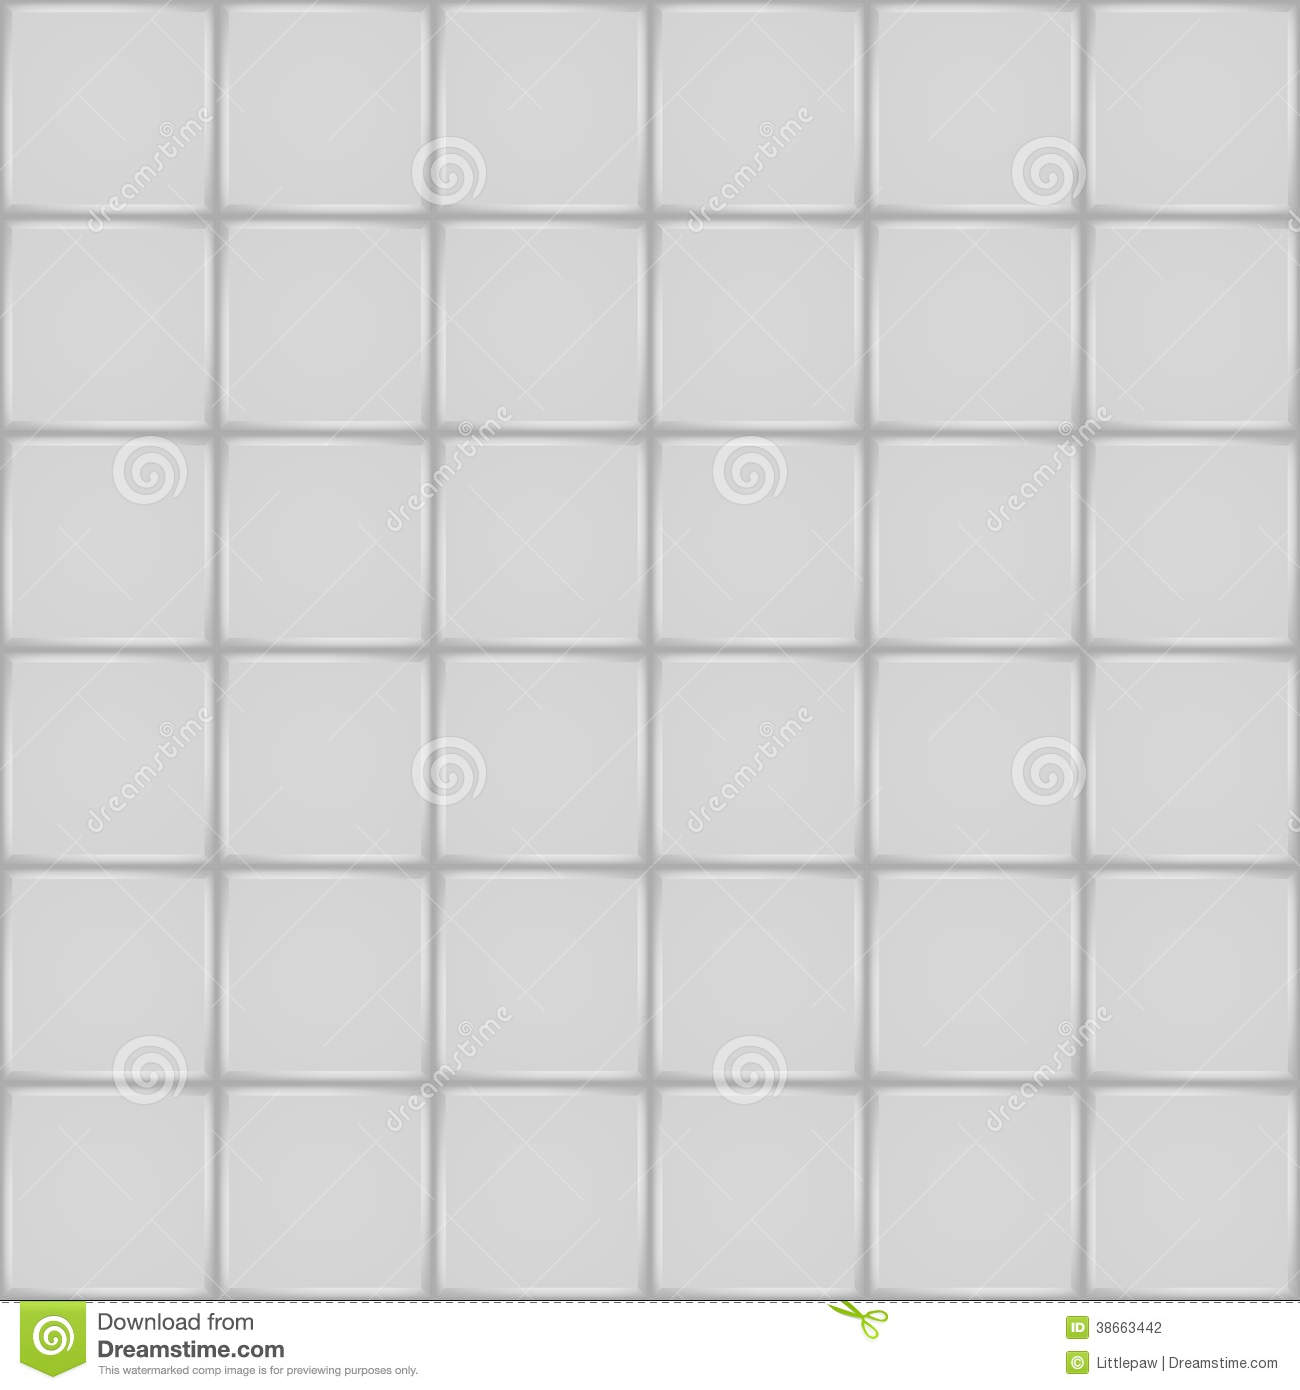 White Ceramic Tile Bathroom Wall Or Floor Seamless Pattern